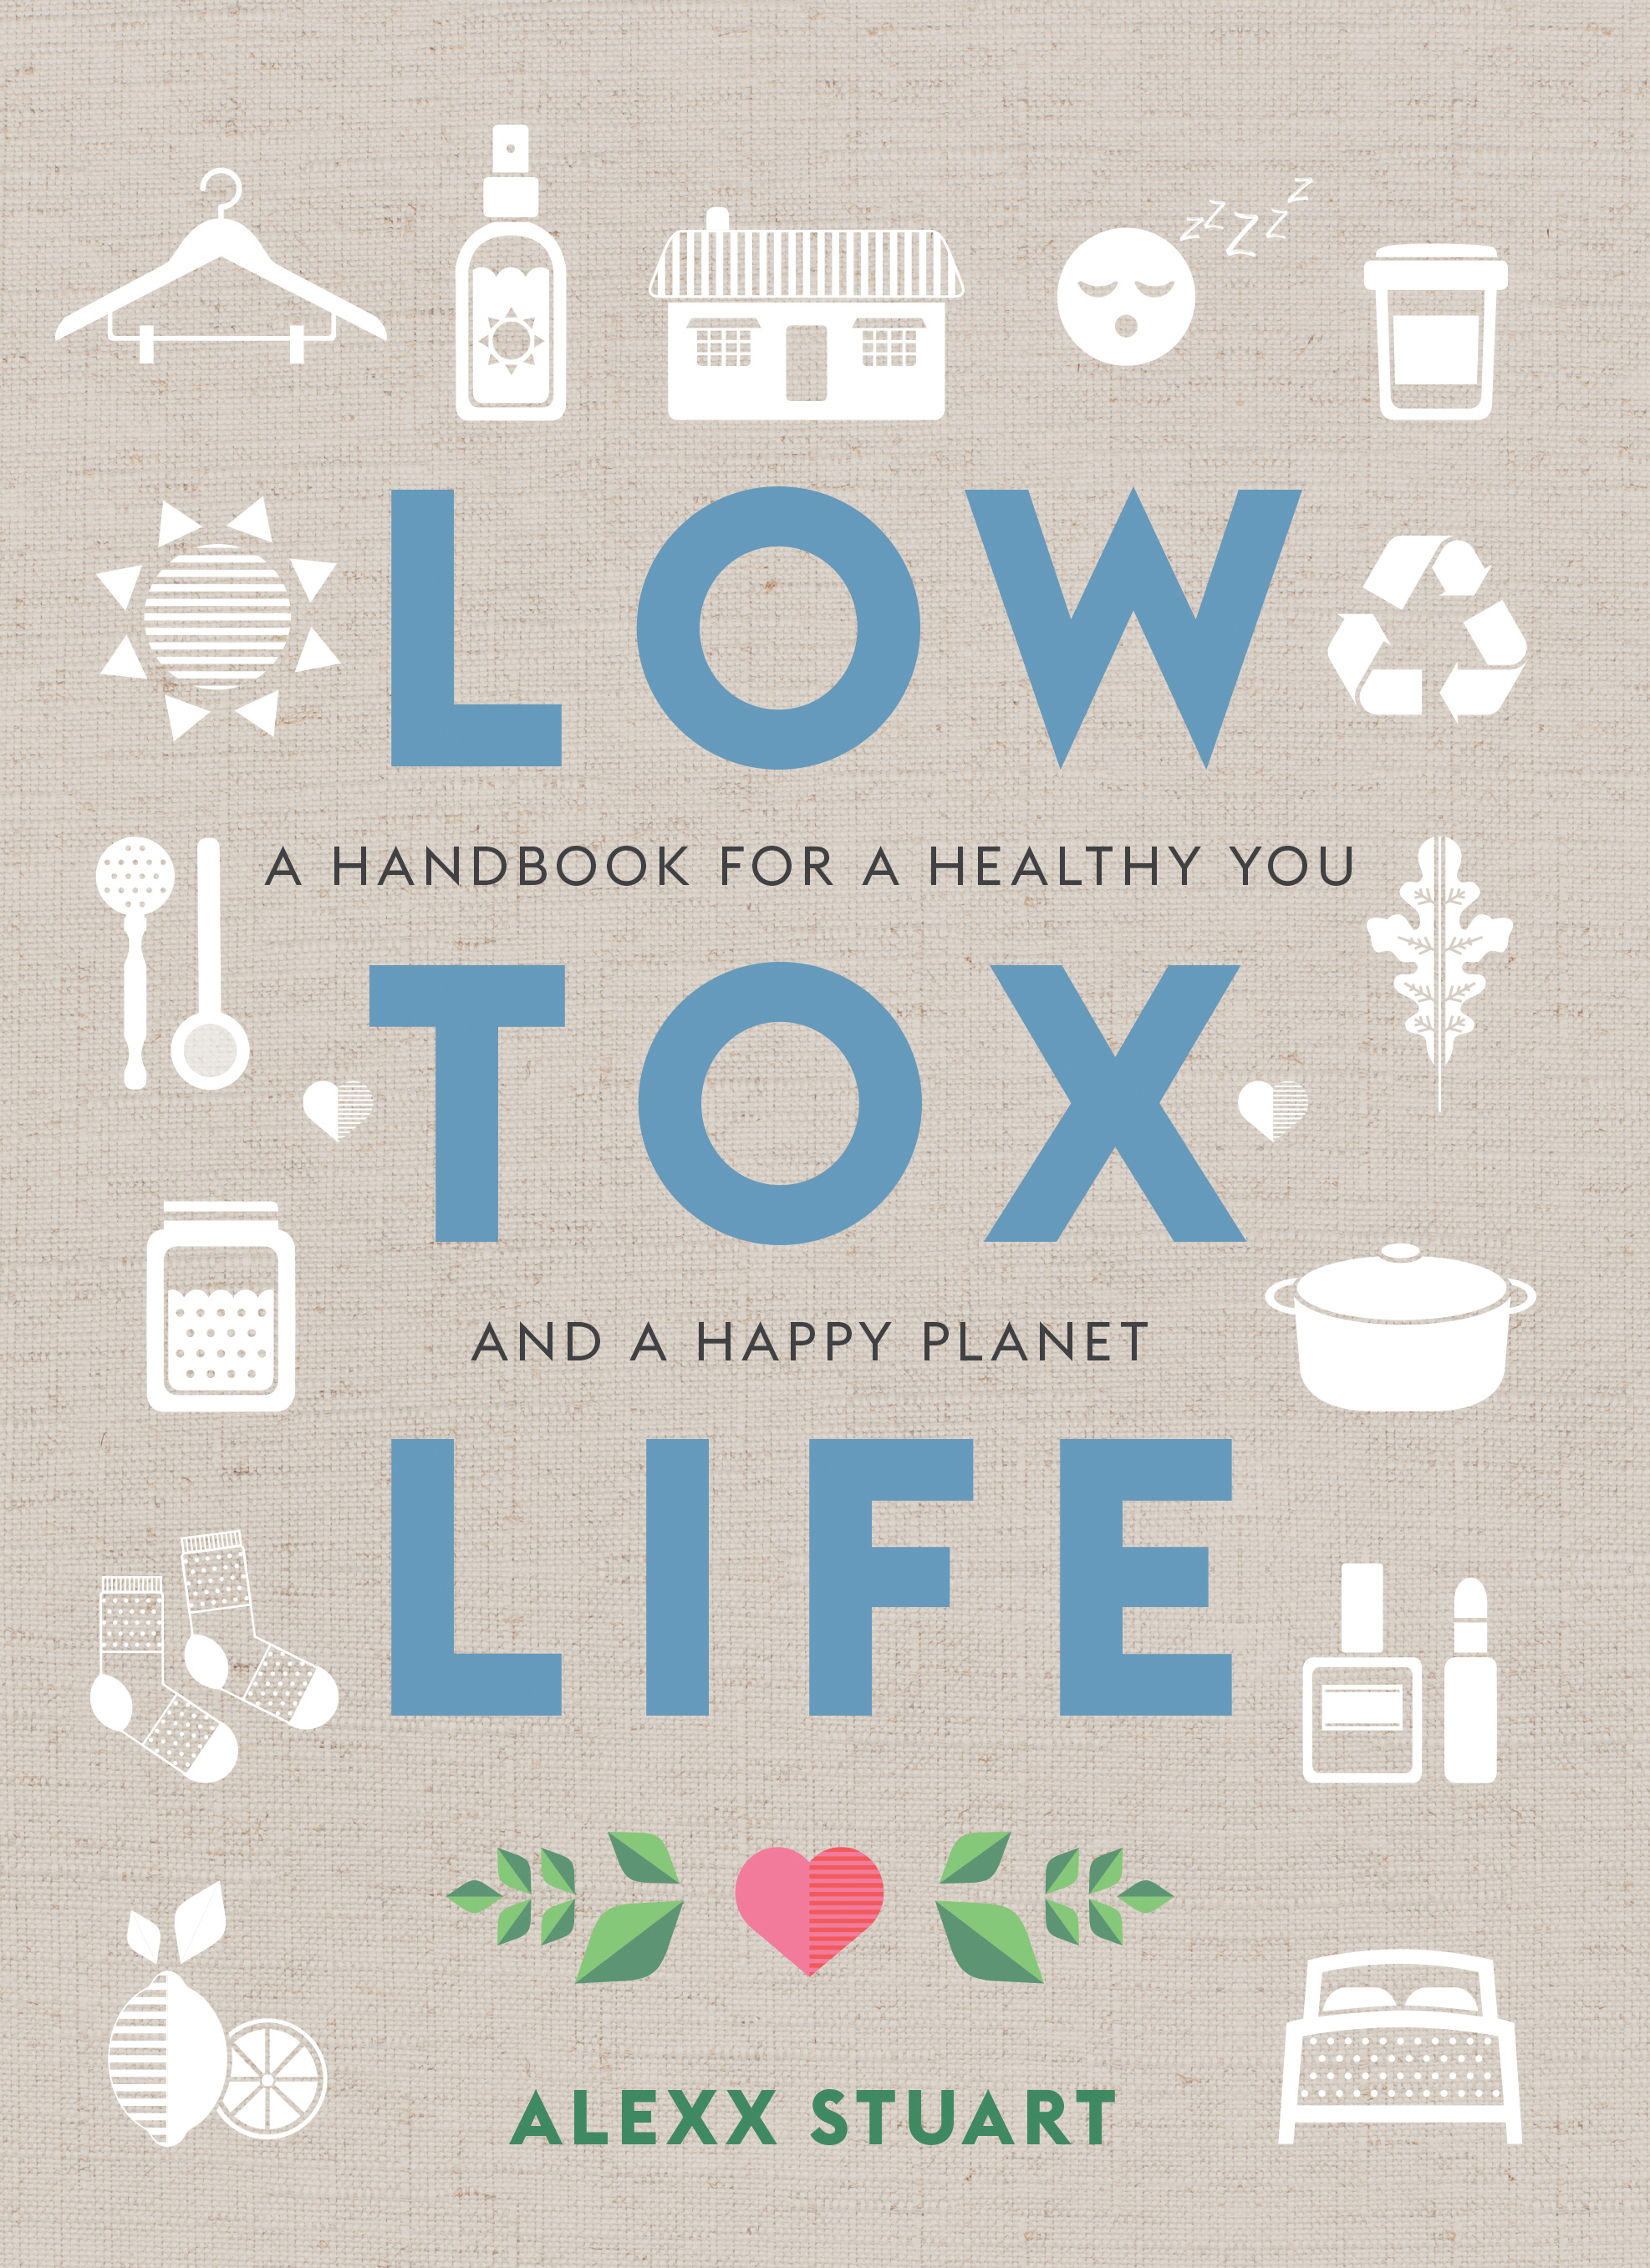 - Today's recipe comes from the wonderful book Low Tox Life by Alexx Stuart. Not only does it have some delicious recipes but it really is a handbook for a healthy you and a happy planet, something we at FoodFaith can really get behind!Of this particular recipe, Alexx says